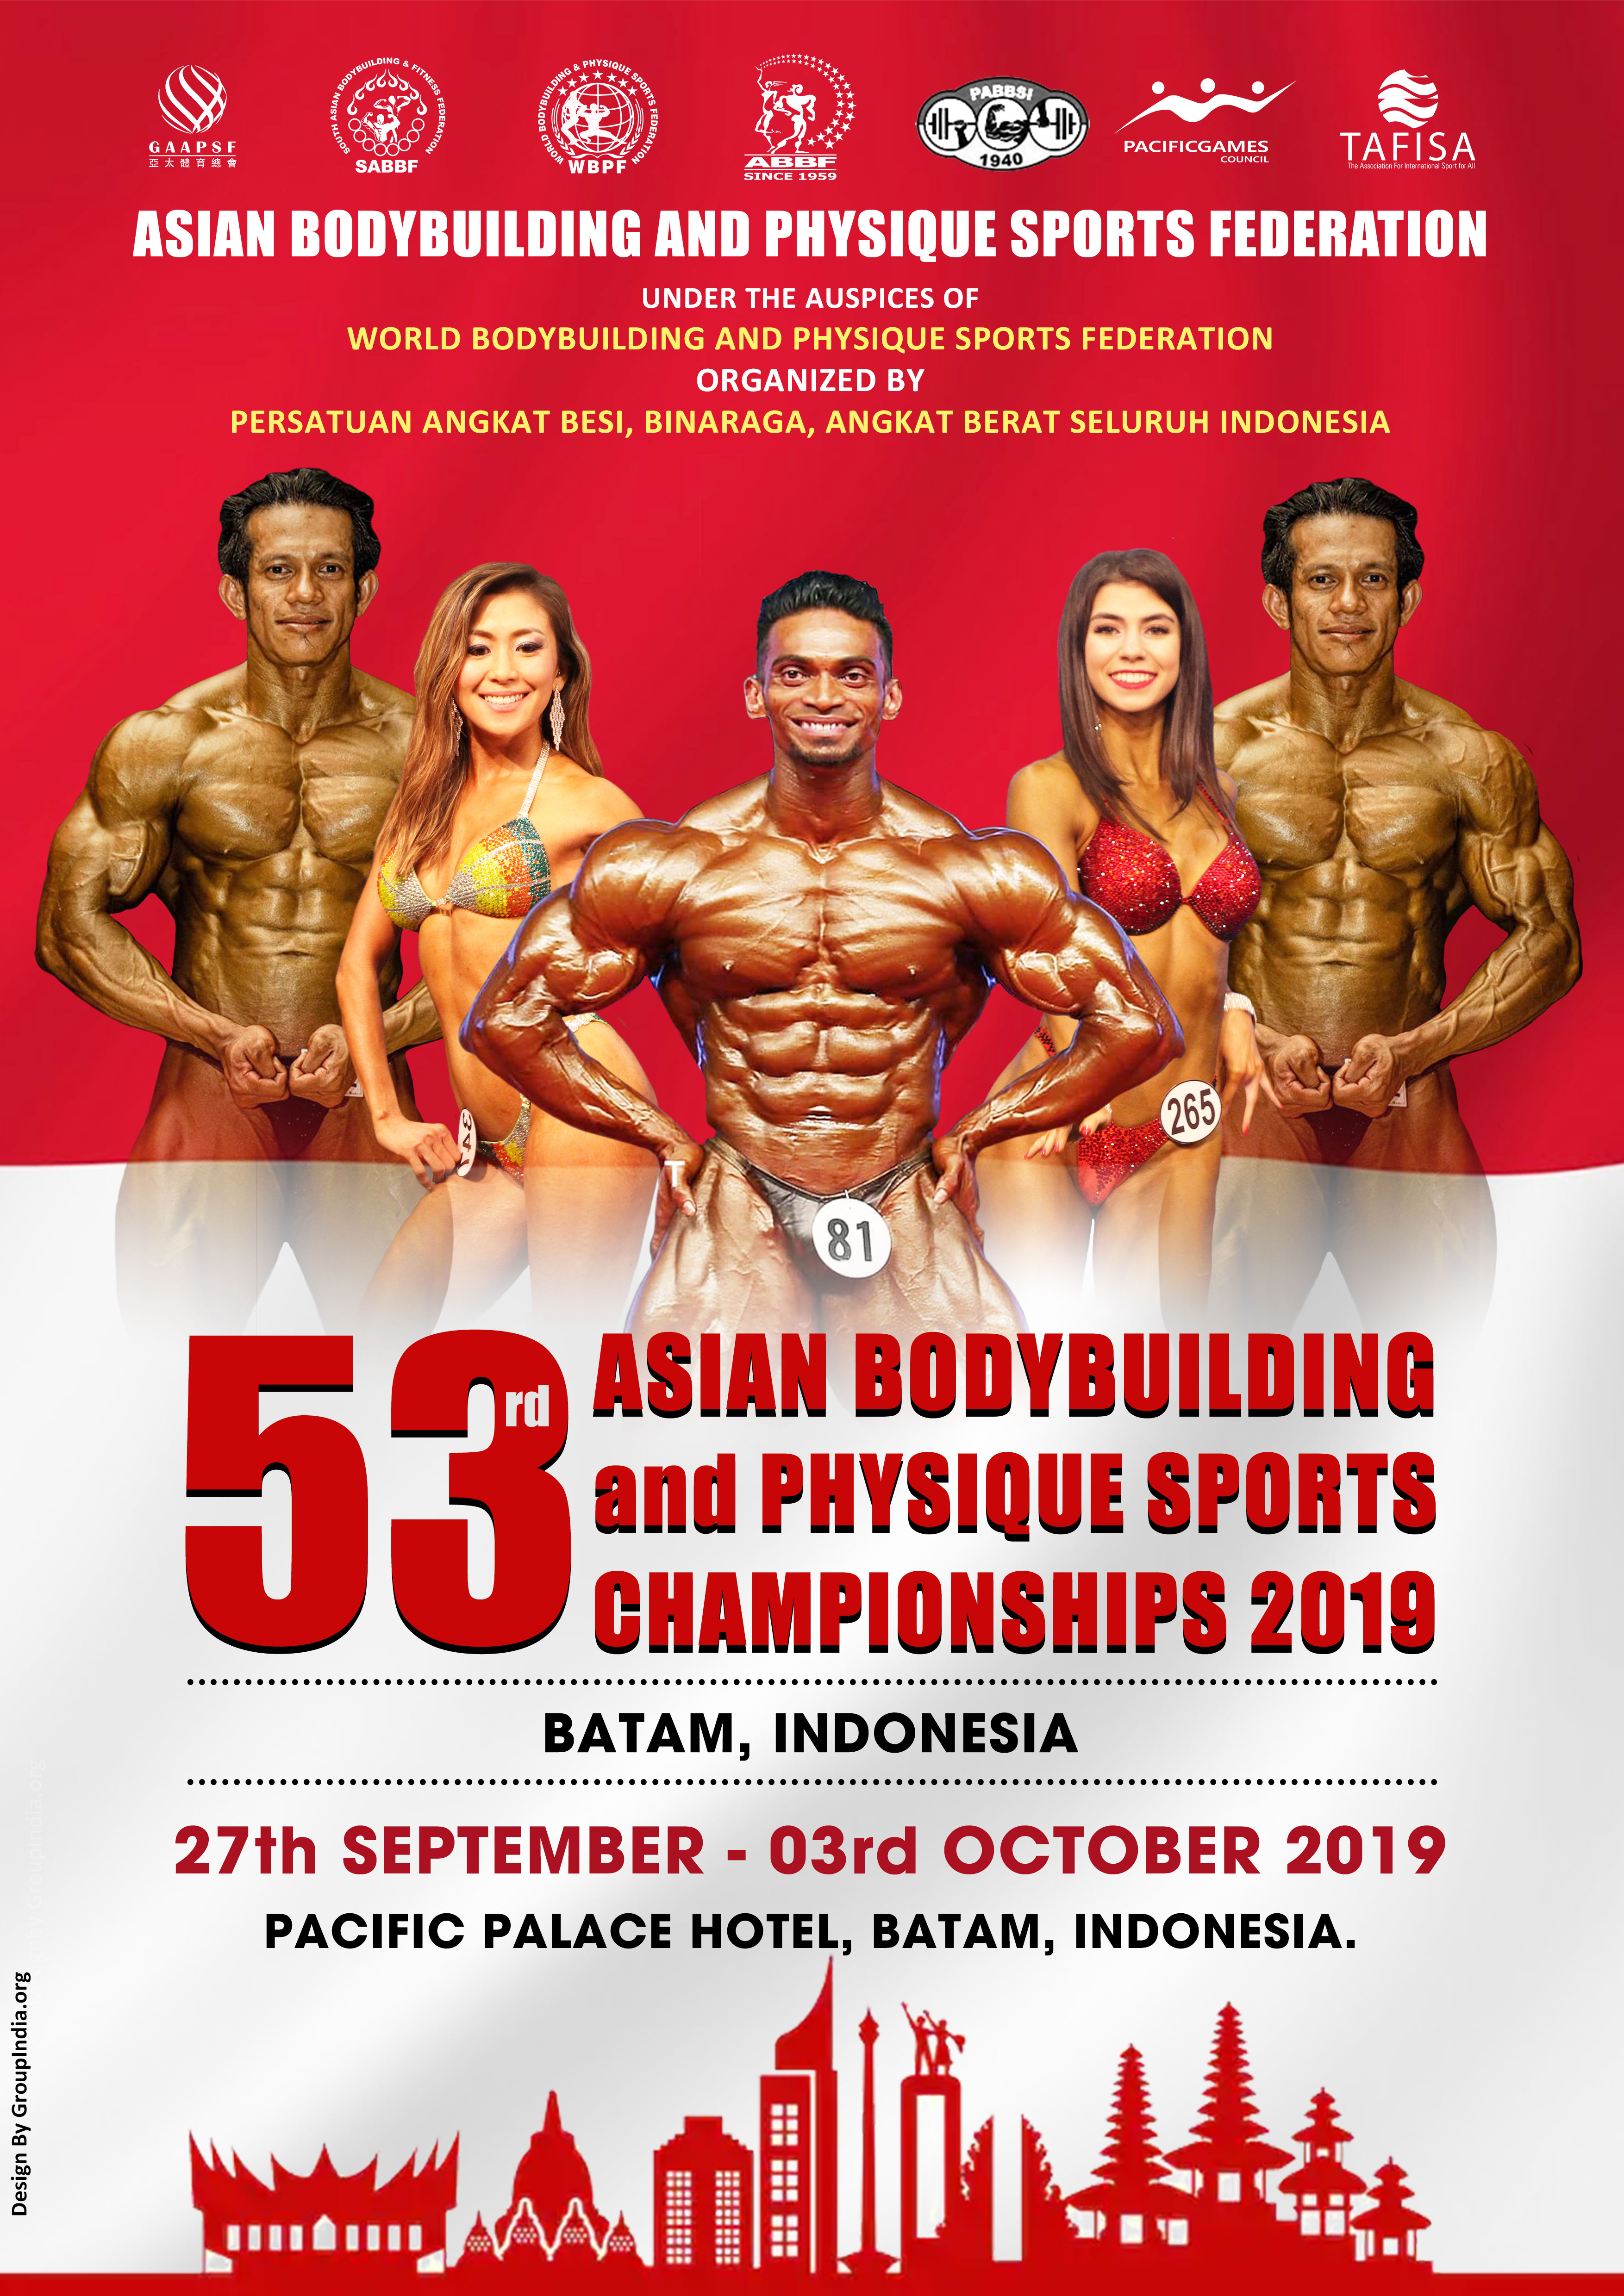 53 Asian Bodybuilding & Physique Sports Championship 2019